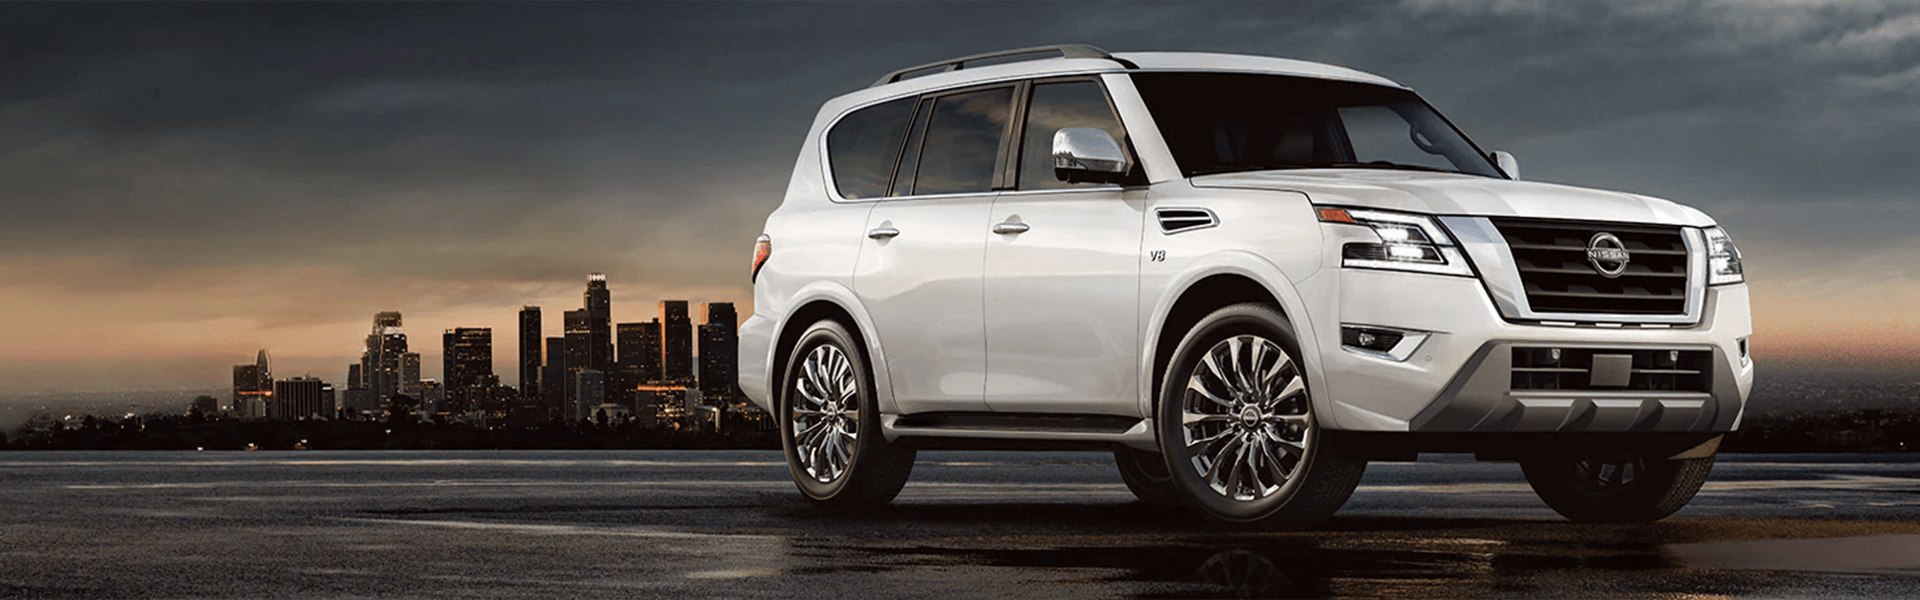 2022 Nissan Armada with city in background